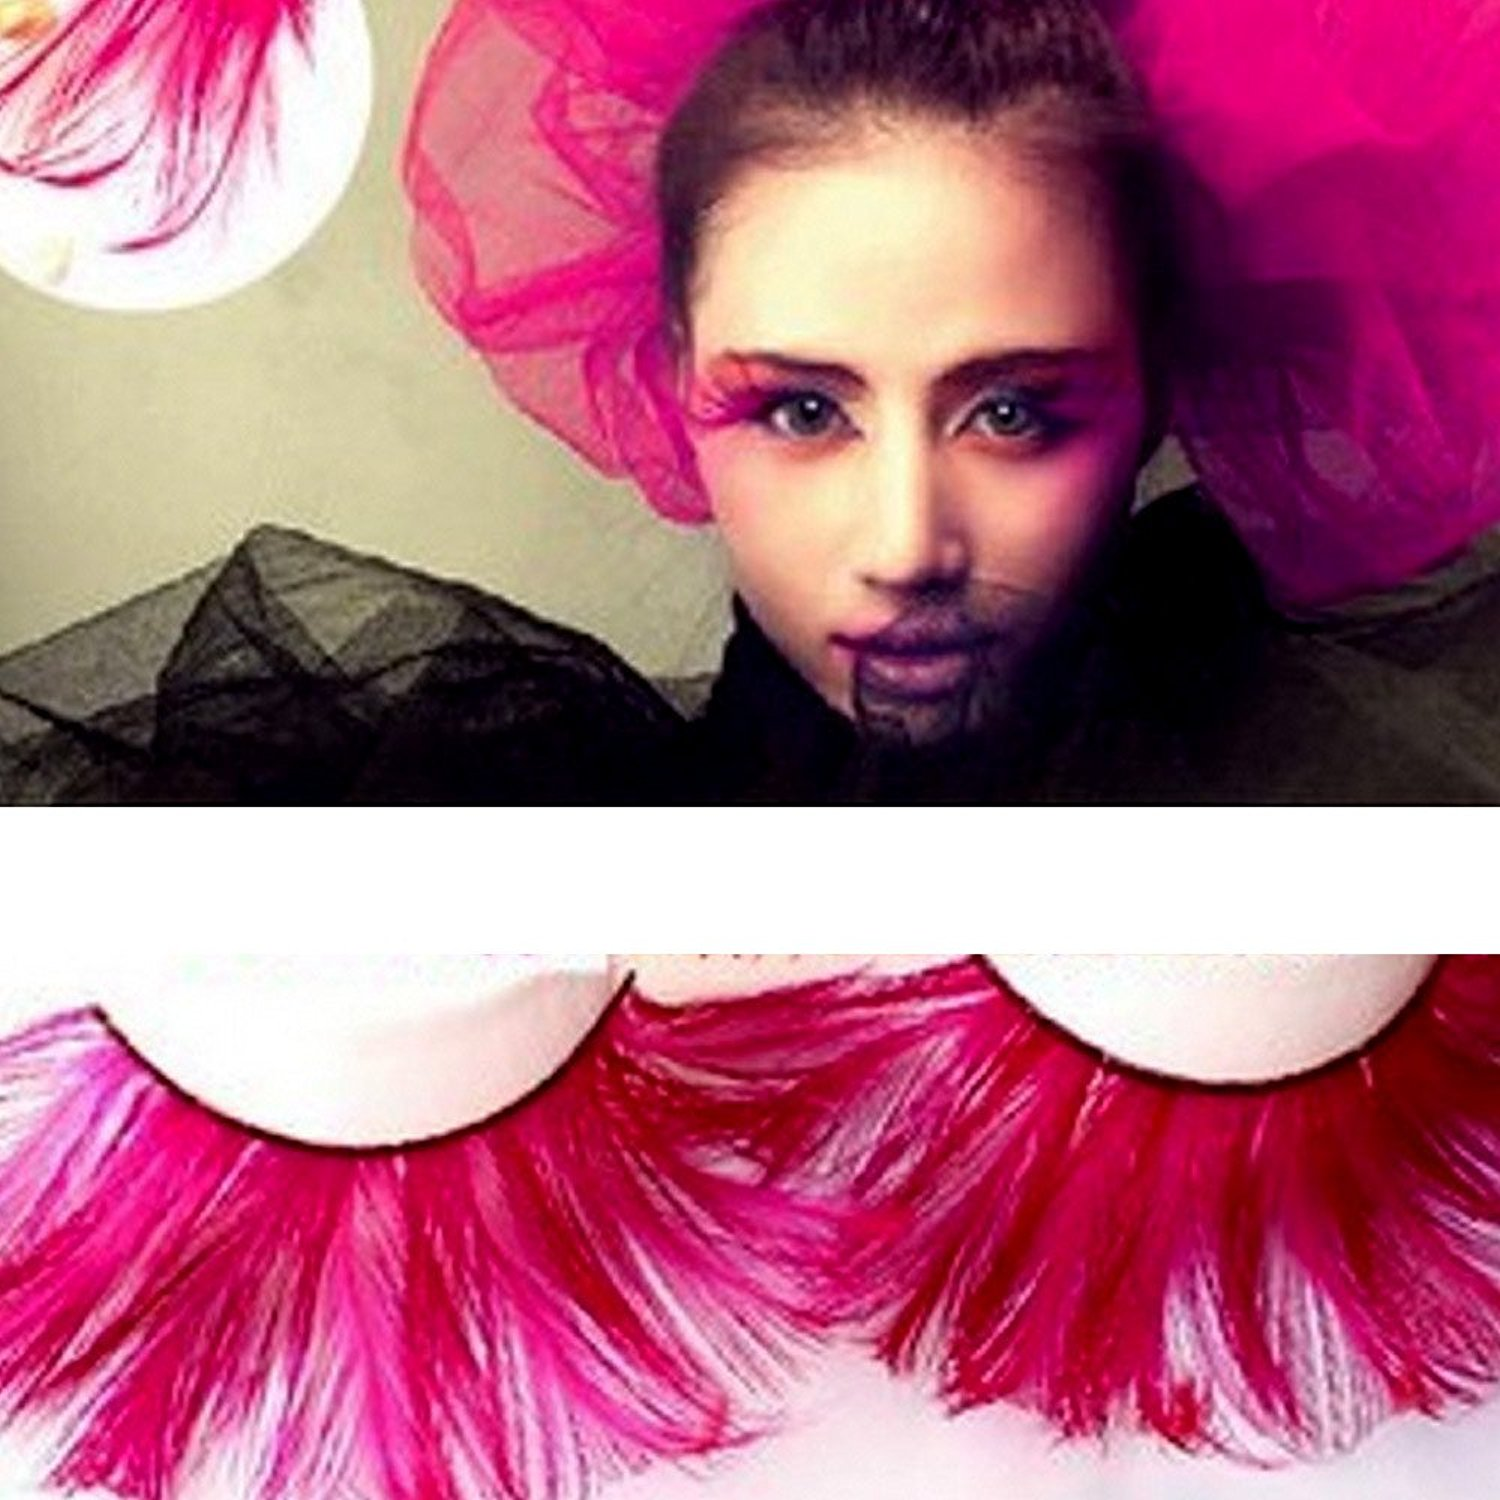 acb161f1d82 Get Quotations · CieKen Women's Long Feather Eyelashes Simulation Thick  Stage Fake Eyelashes Party Dance Halloween Costume (1